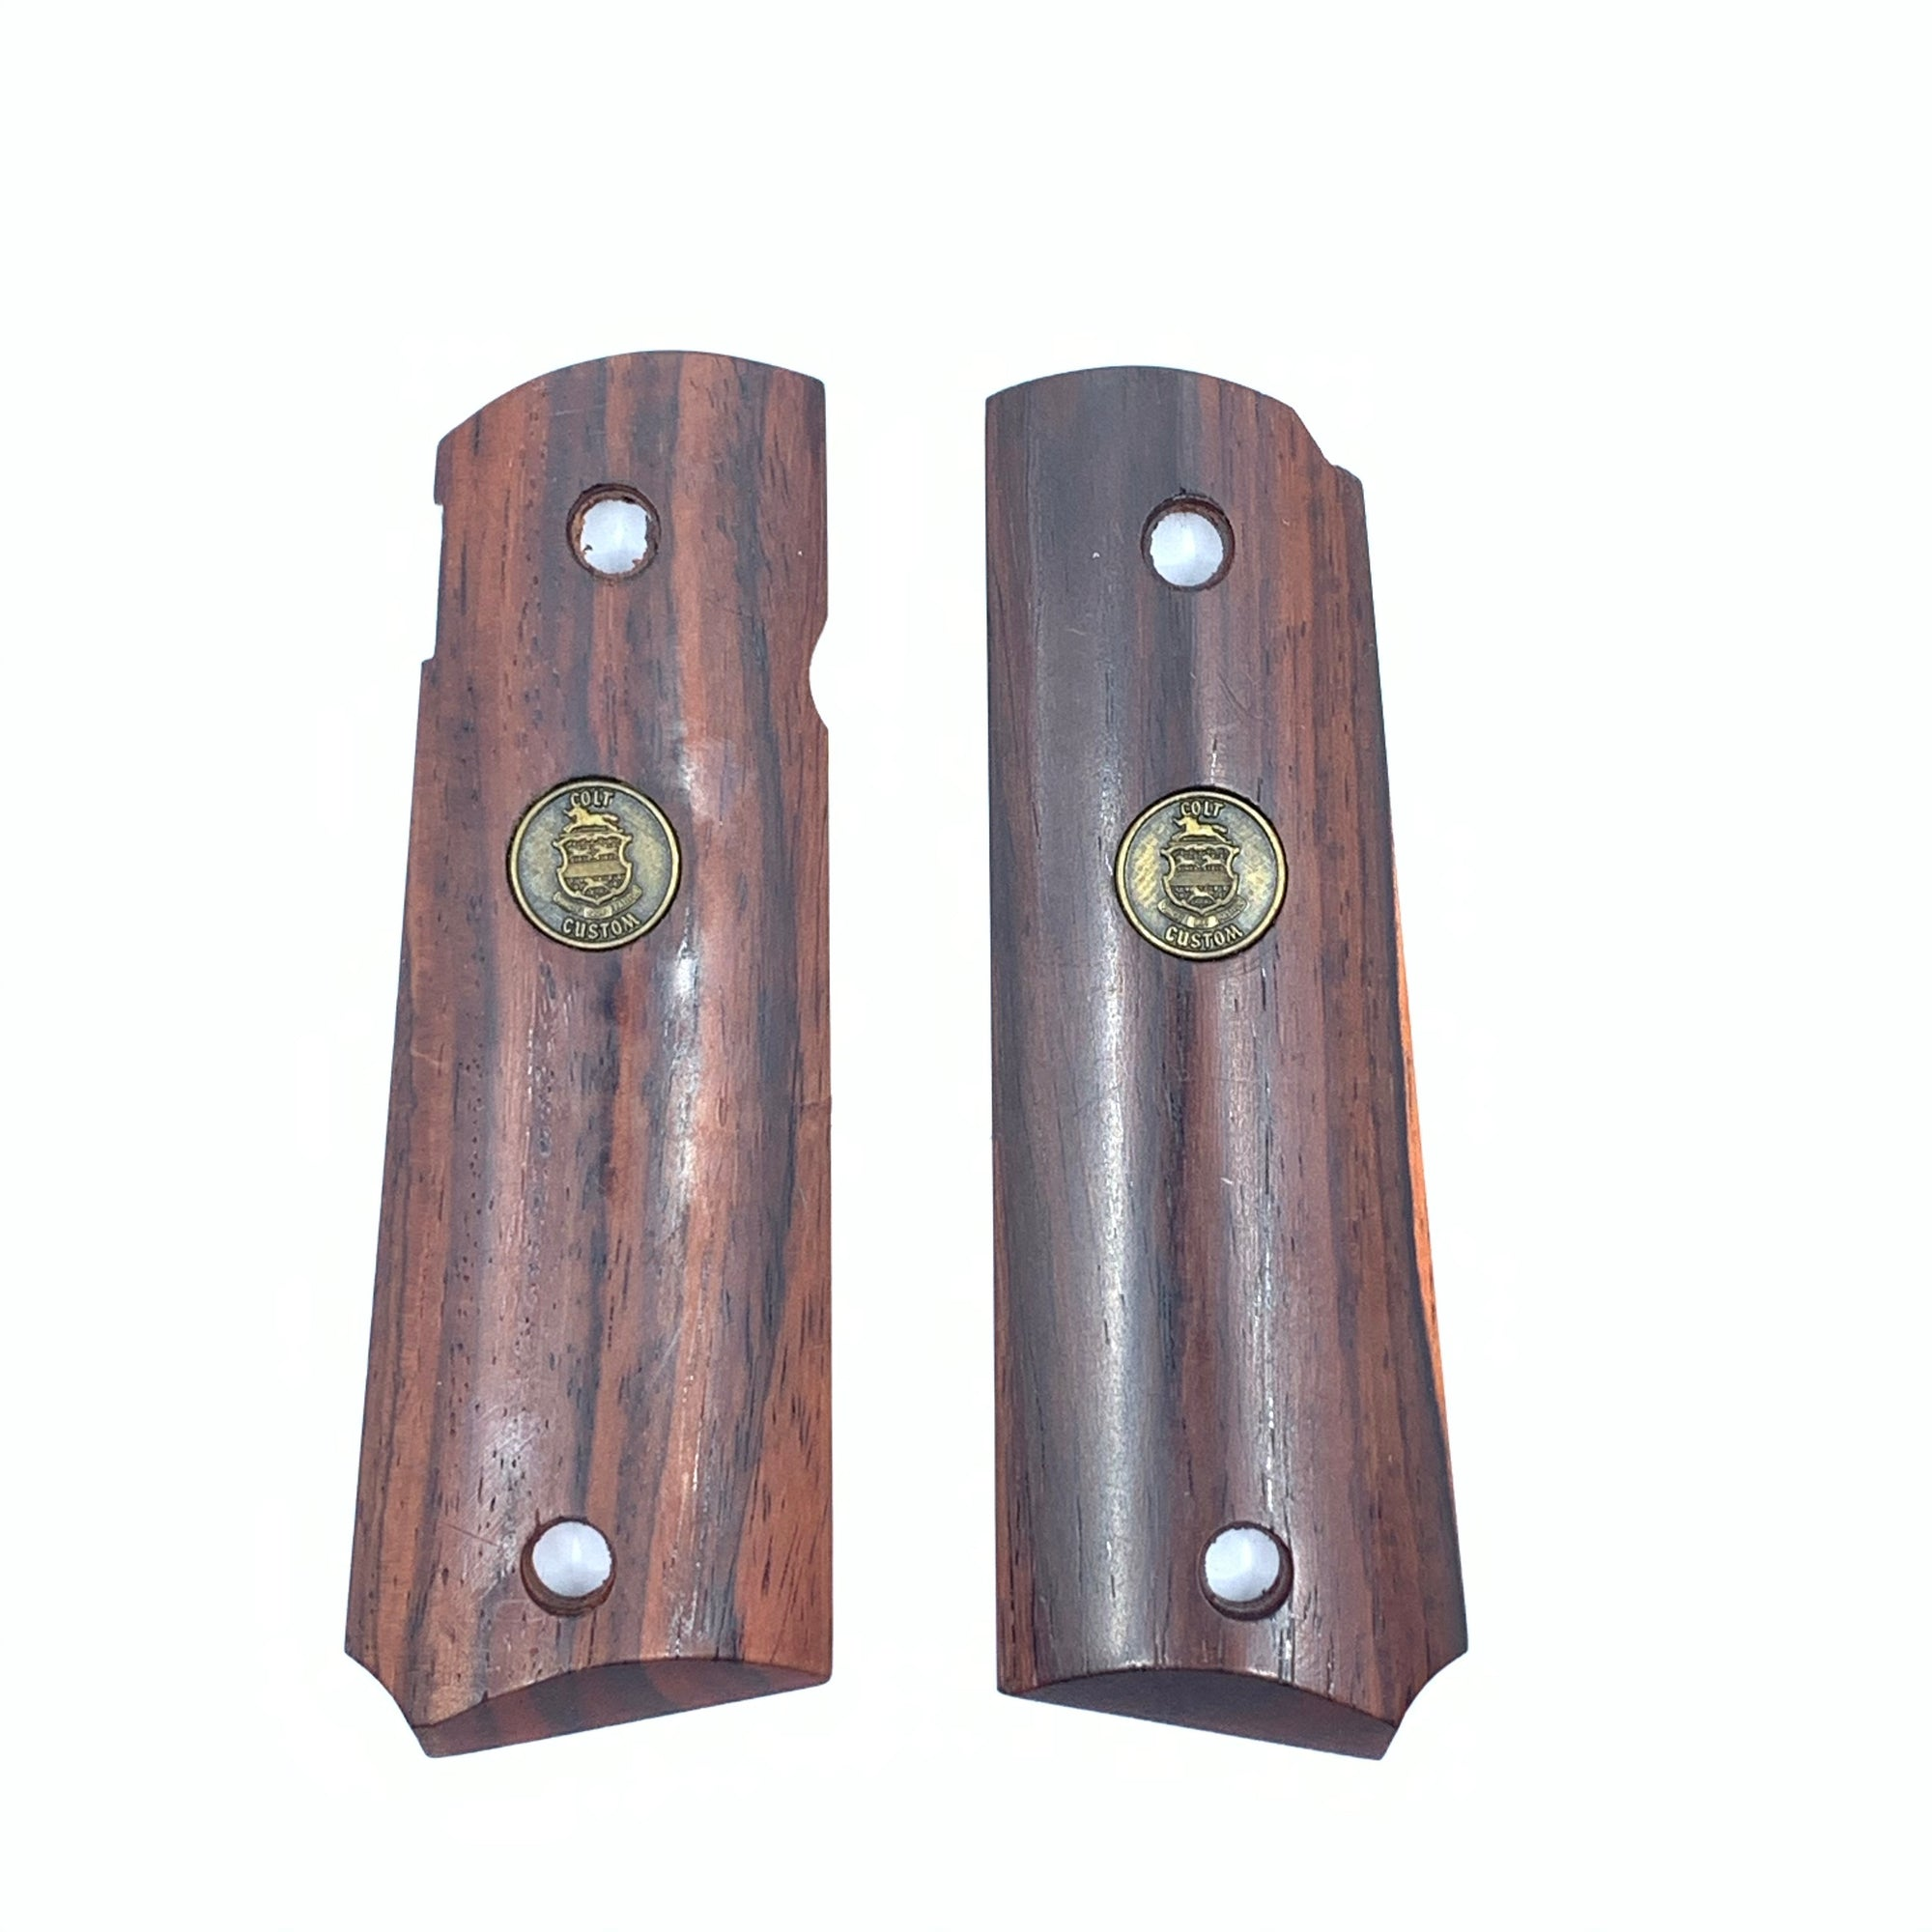 Colt 1911 Fancy Wood Grip Set with Colt Custom Emblem